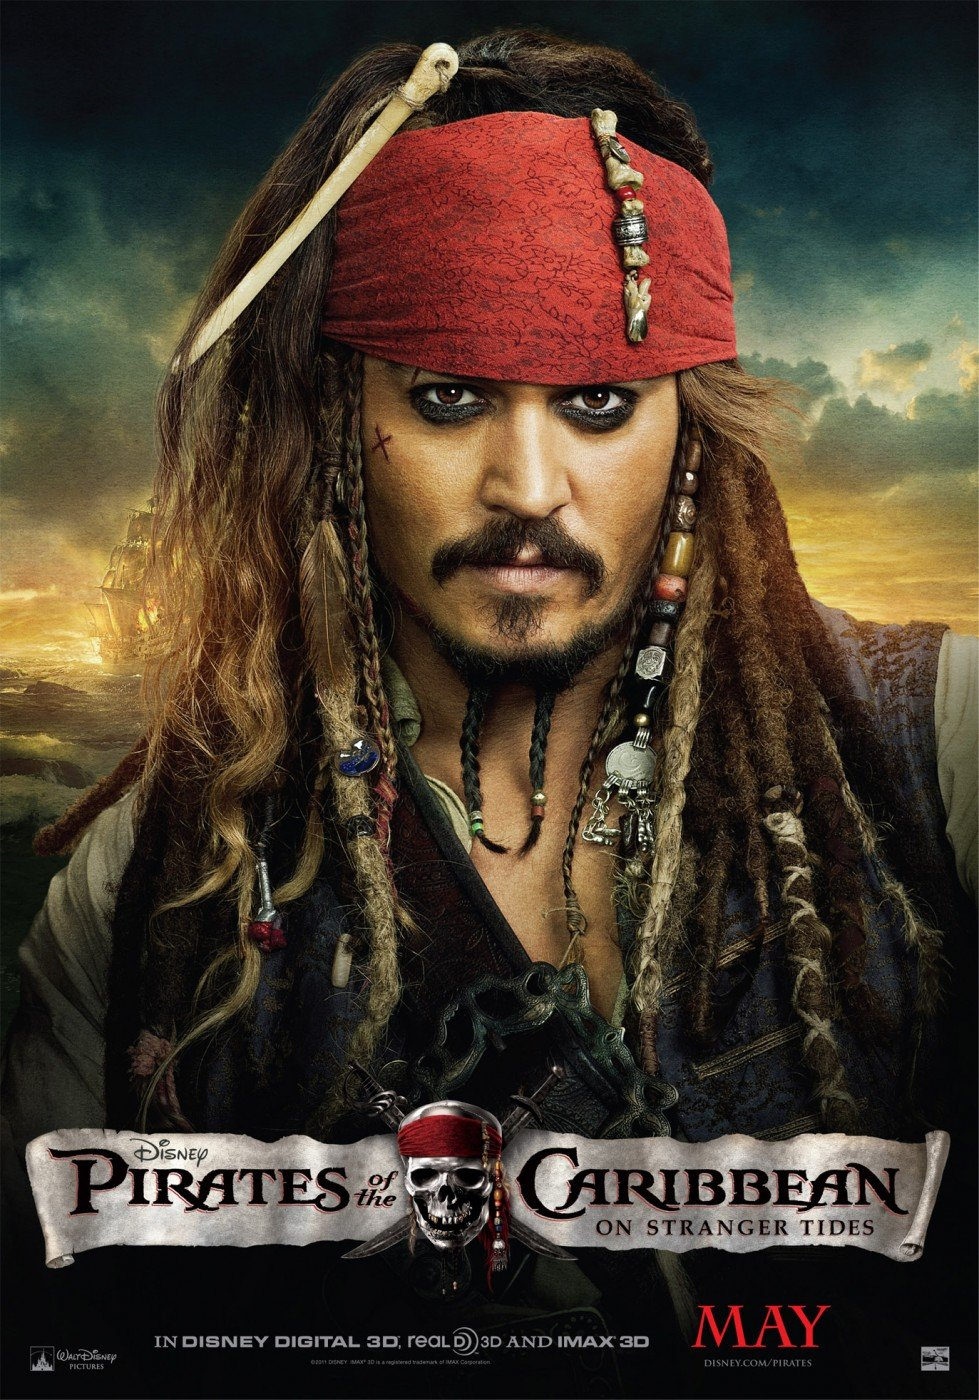 New pirates of the caribbean on stranger tides posters featuring depp